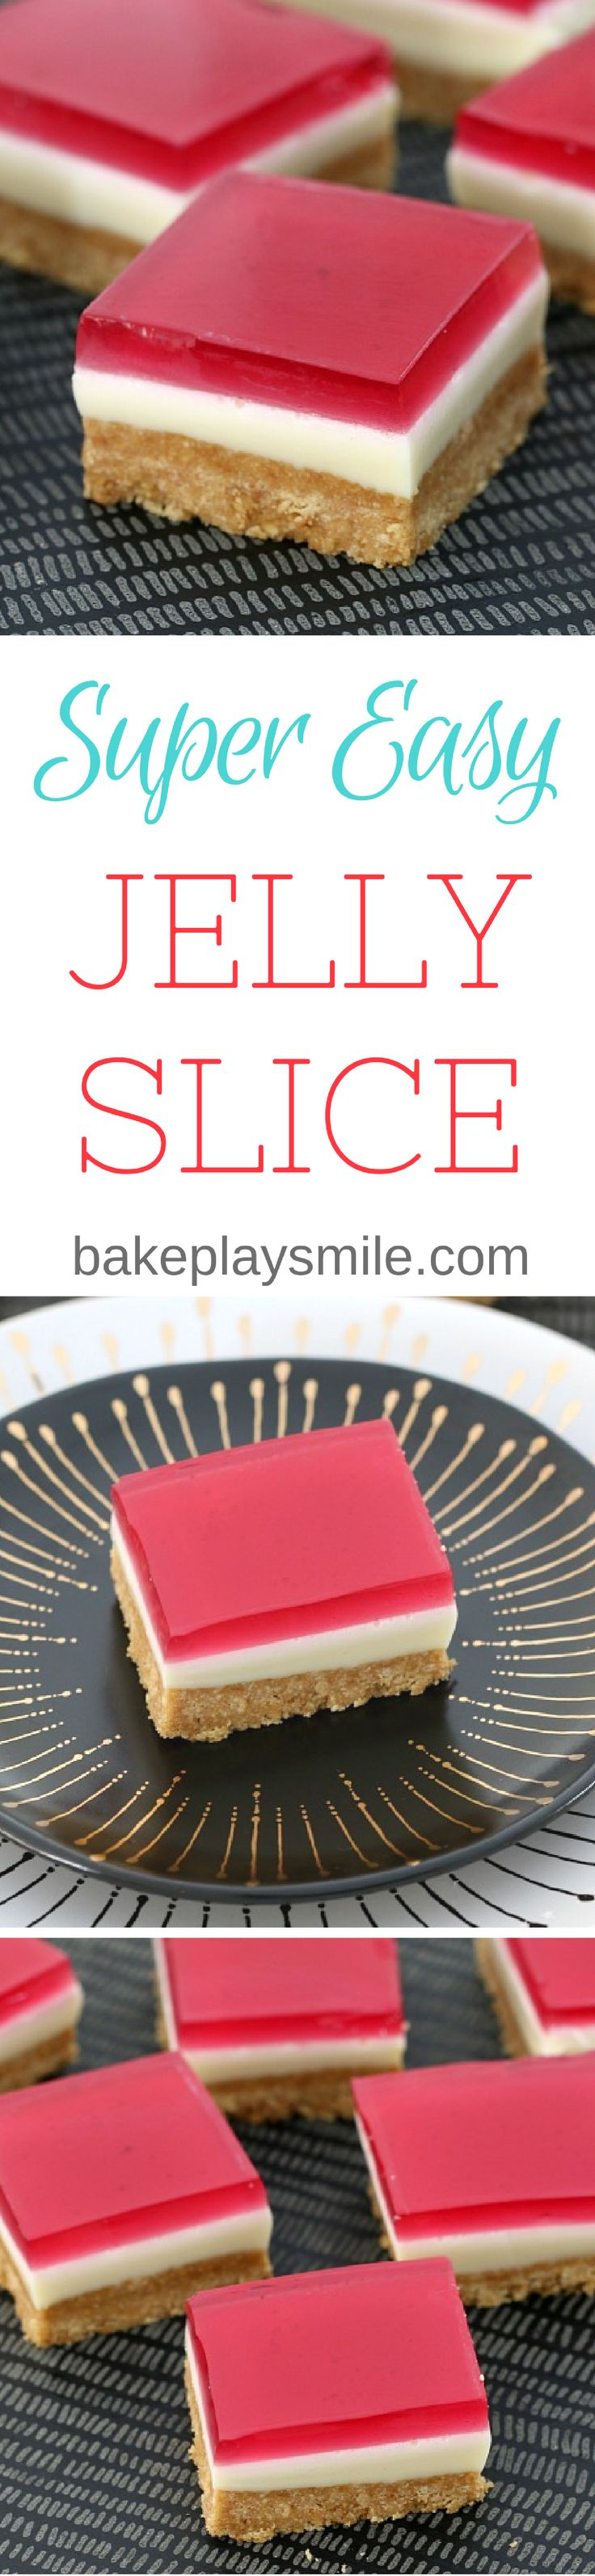 A super easy Jelly Slice recipe that the whole family will LOVE! This classic favourite is so simple to make… and equally as delicious to eat!!  #jelly #slice #easy #recipe #best #classic #kids #thermomix #conventional